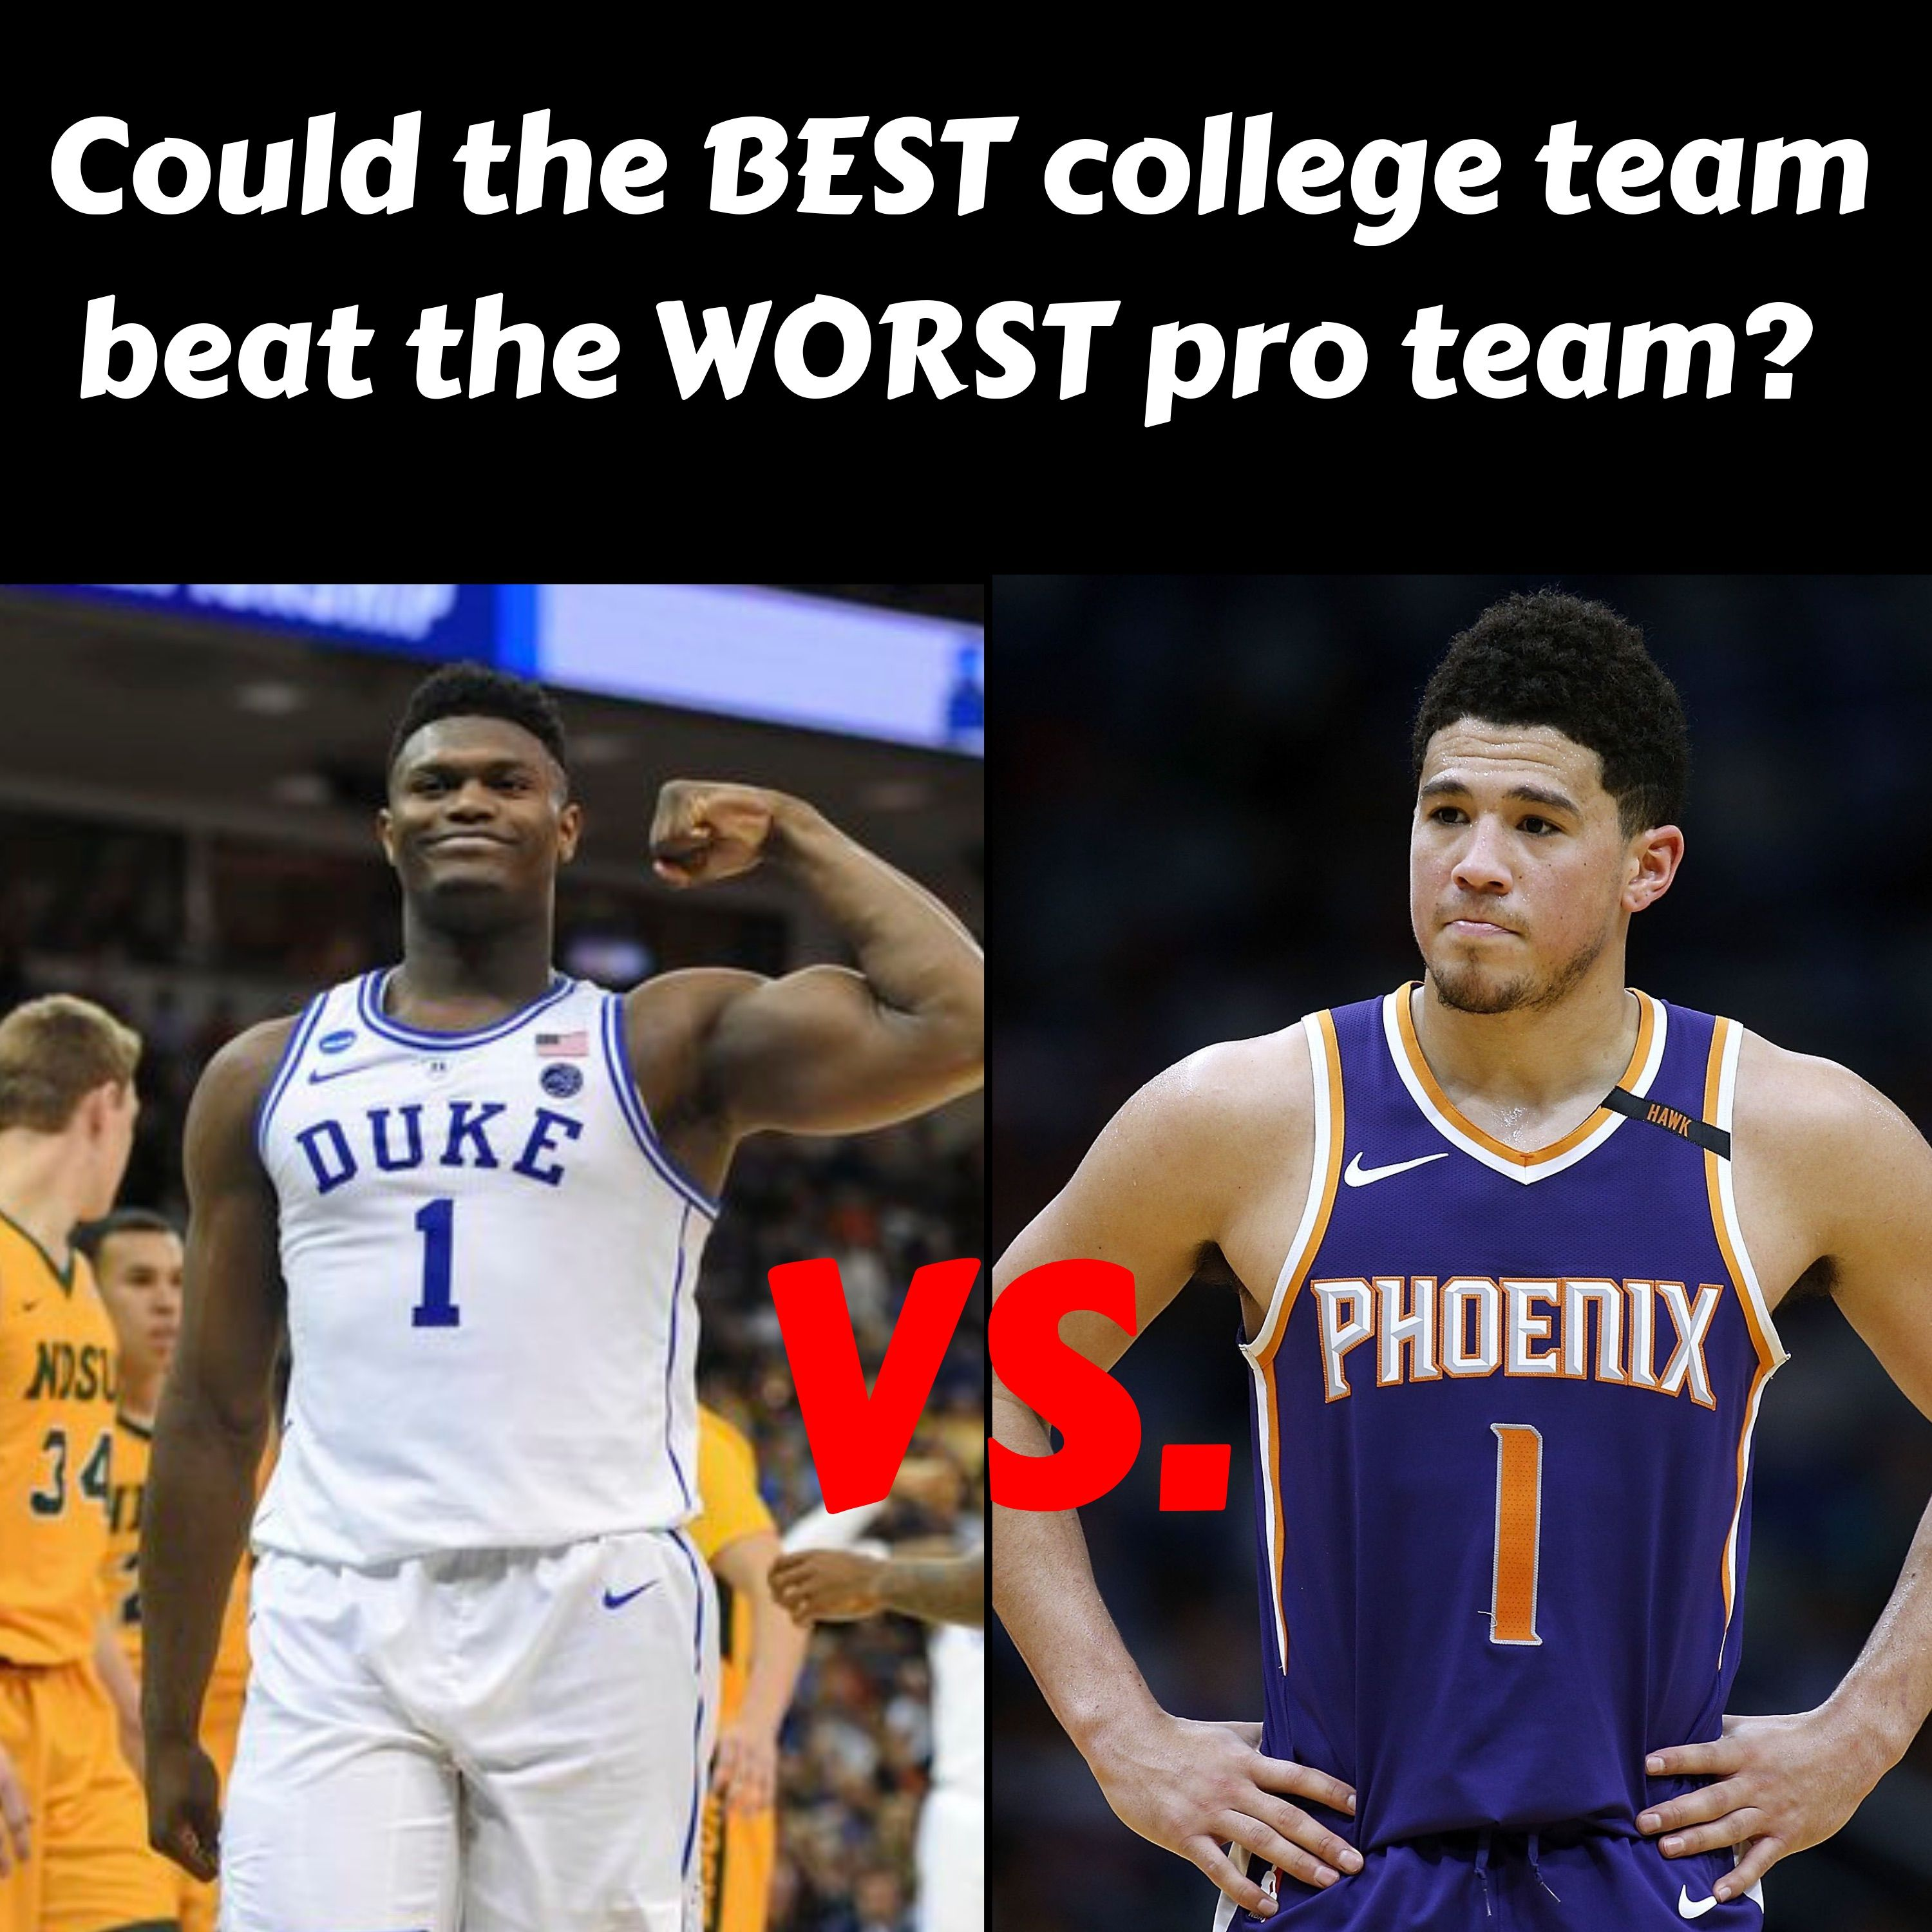 Could The Best College Team Beat The Worst Pro Team?